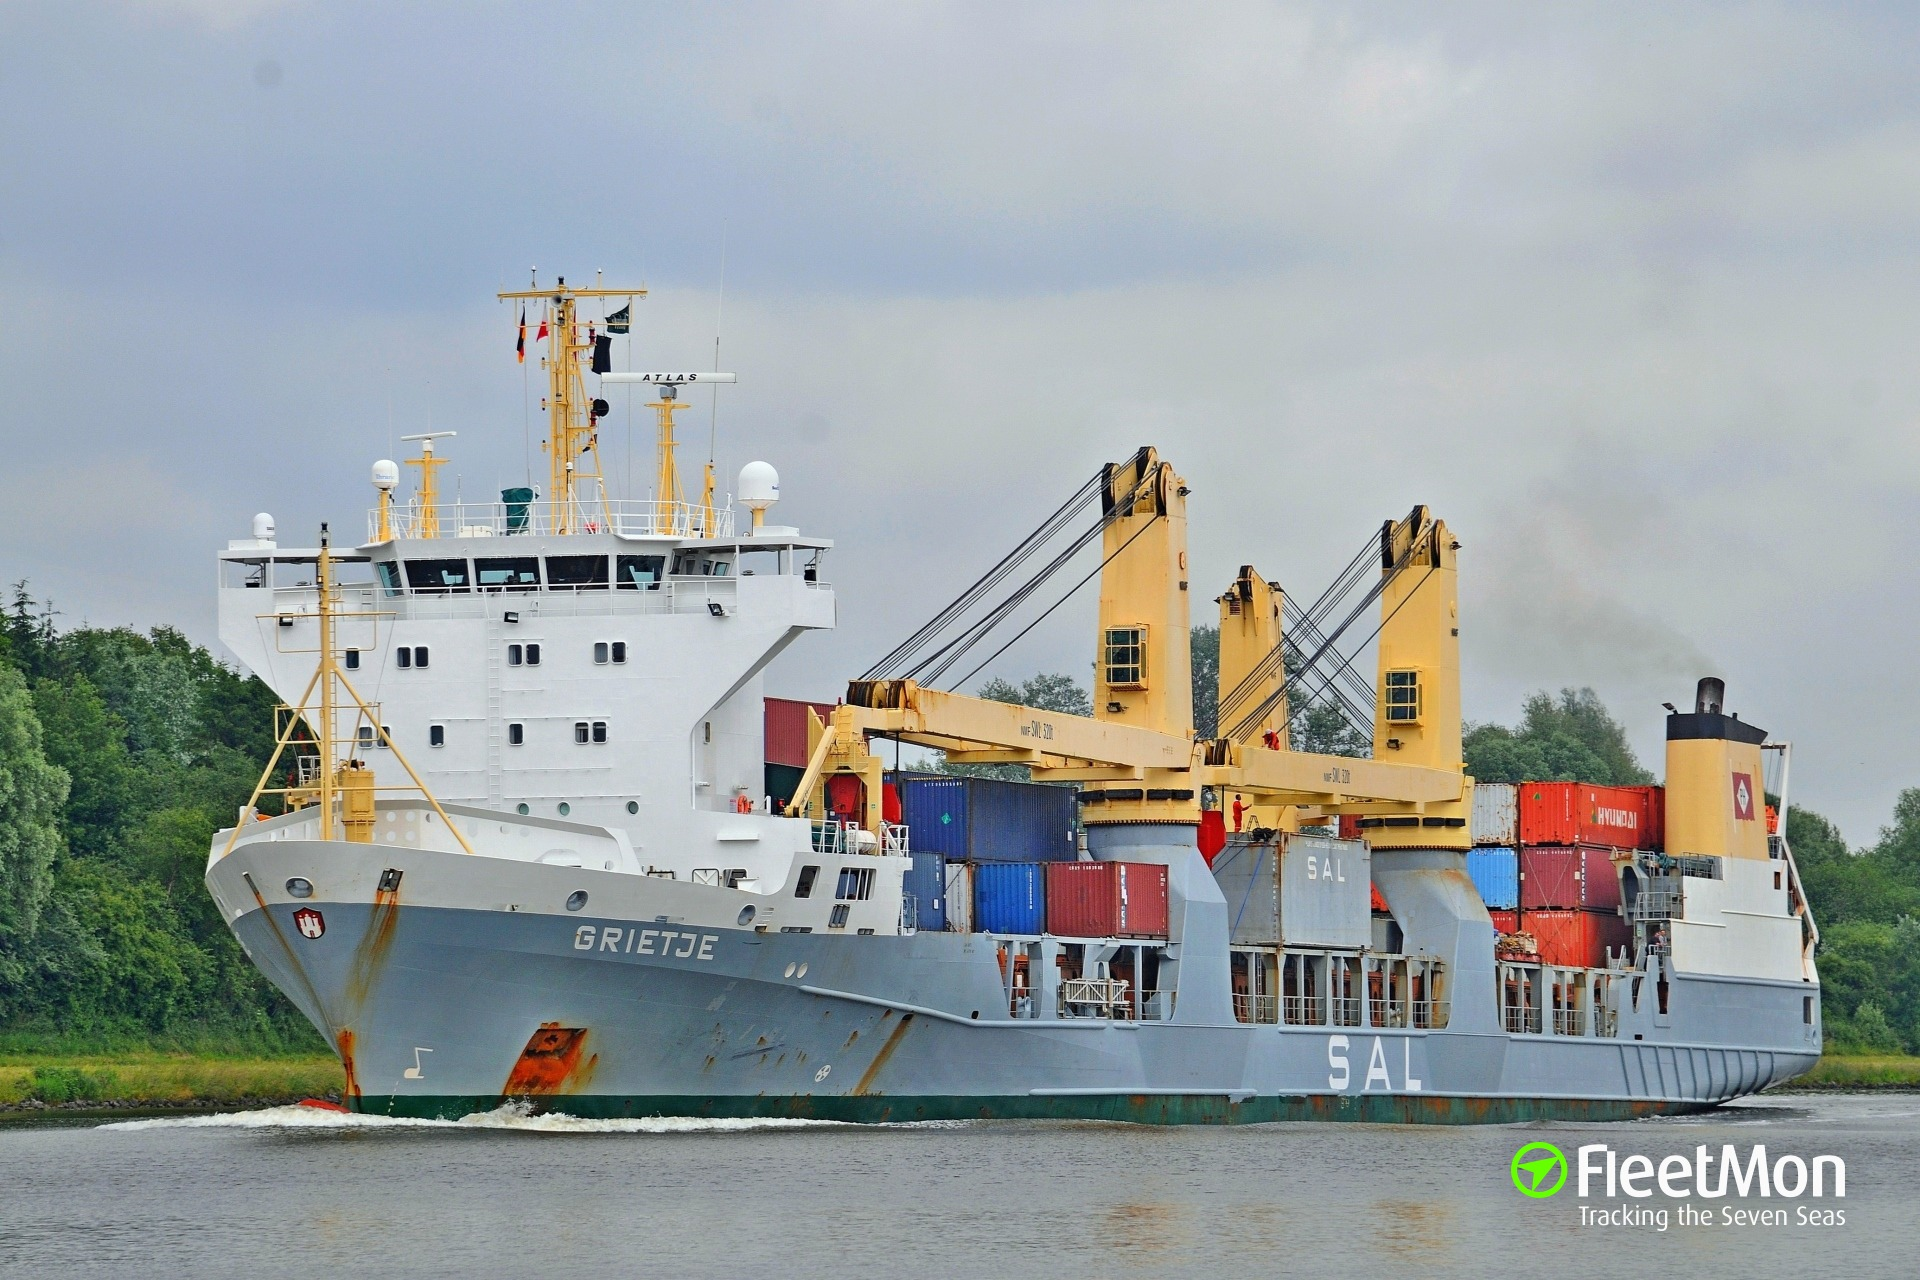 German freighter Grietje, Italian mariners and Indian double standards